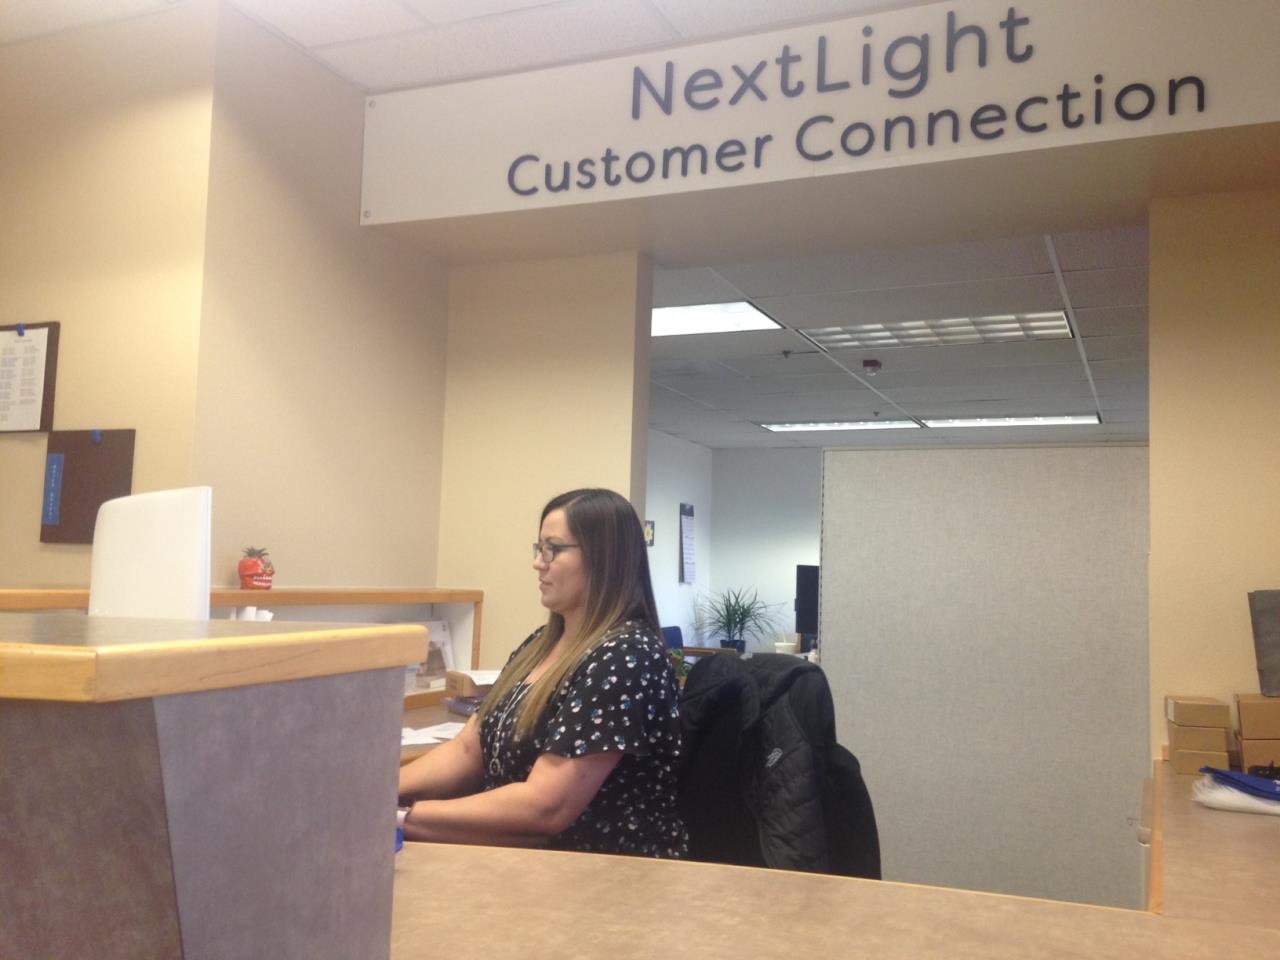 NextLight Customer Connection Desk